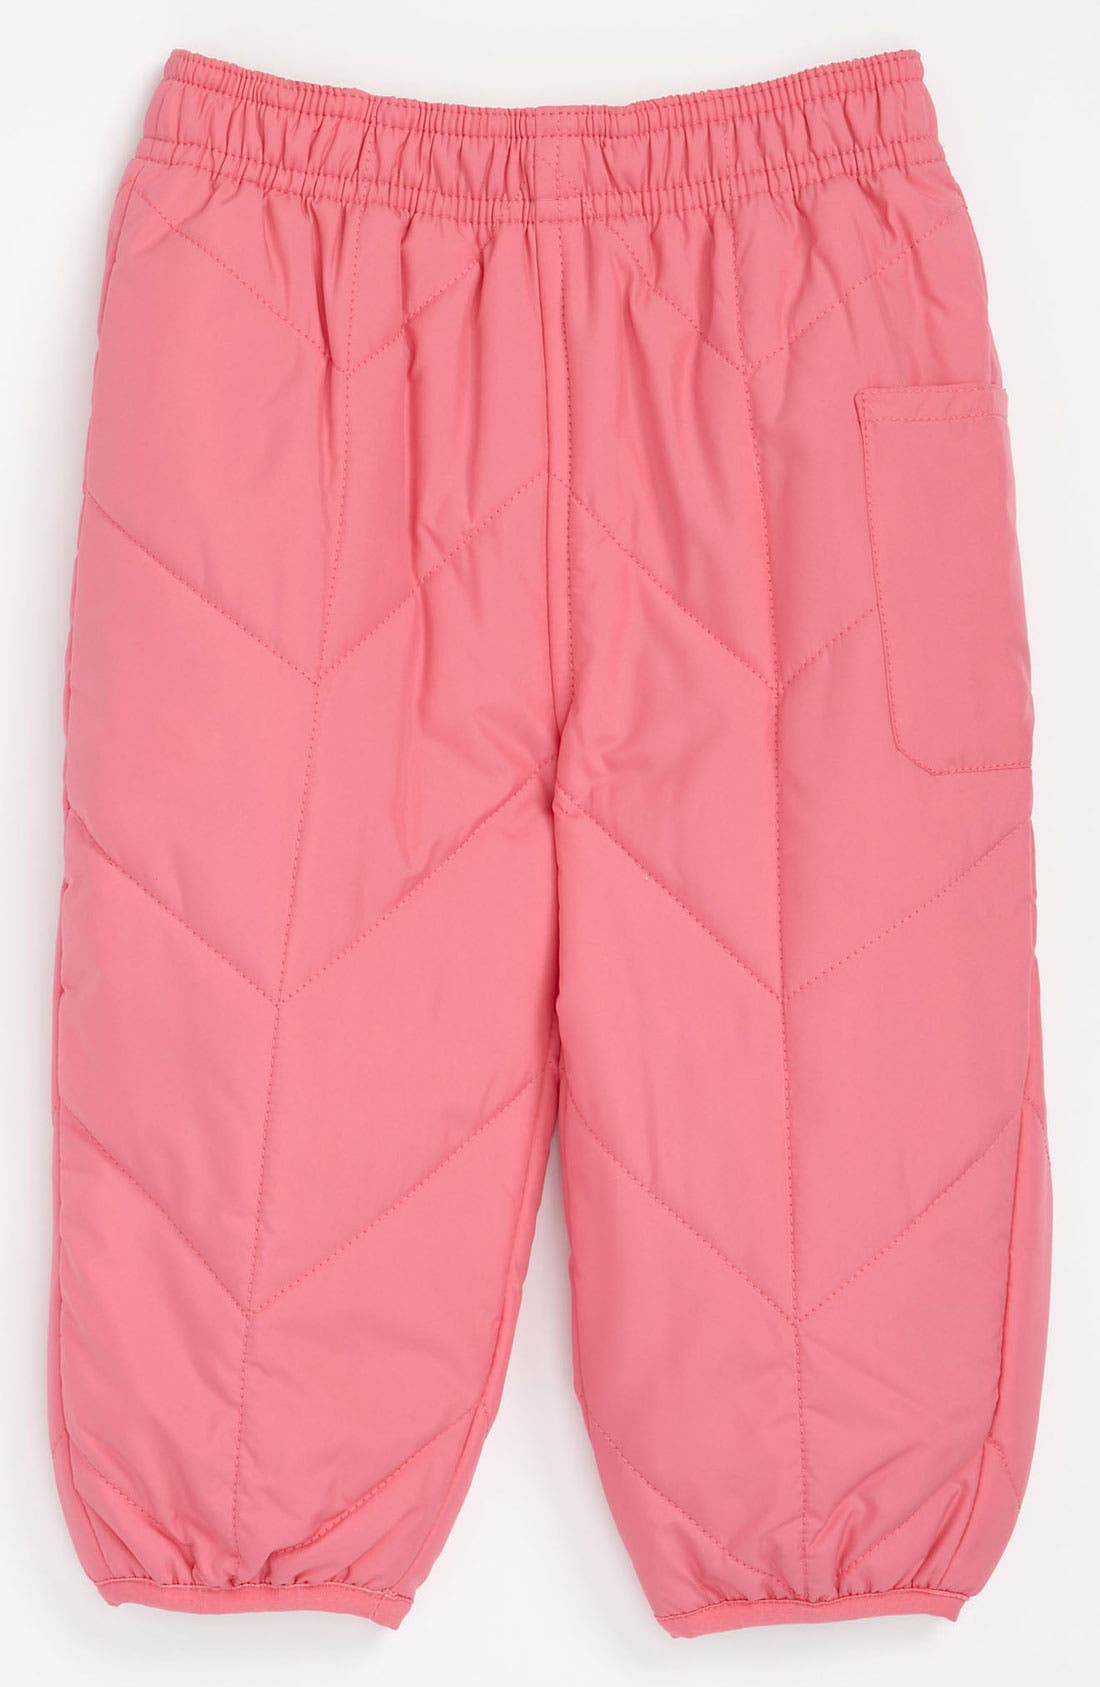 Alternate Image 1 Selected - The North Face 'Perrito' Reversible Pants (Baby)